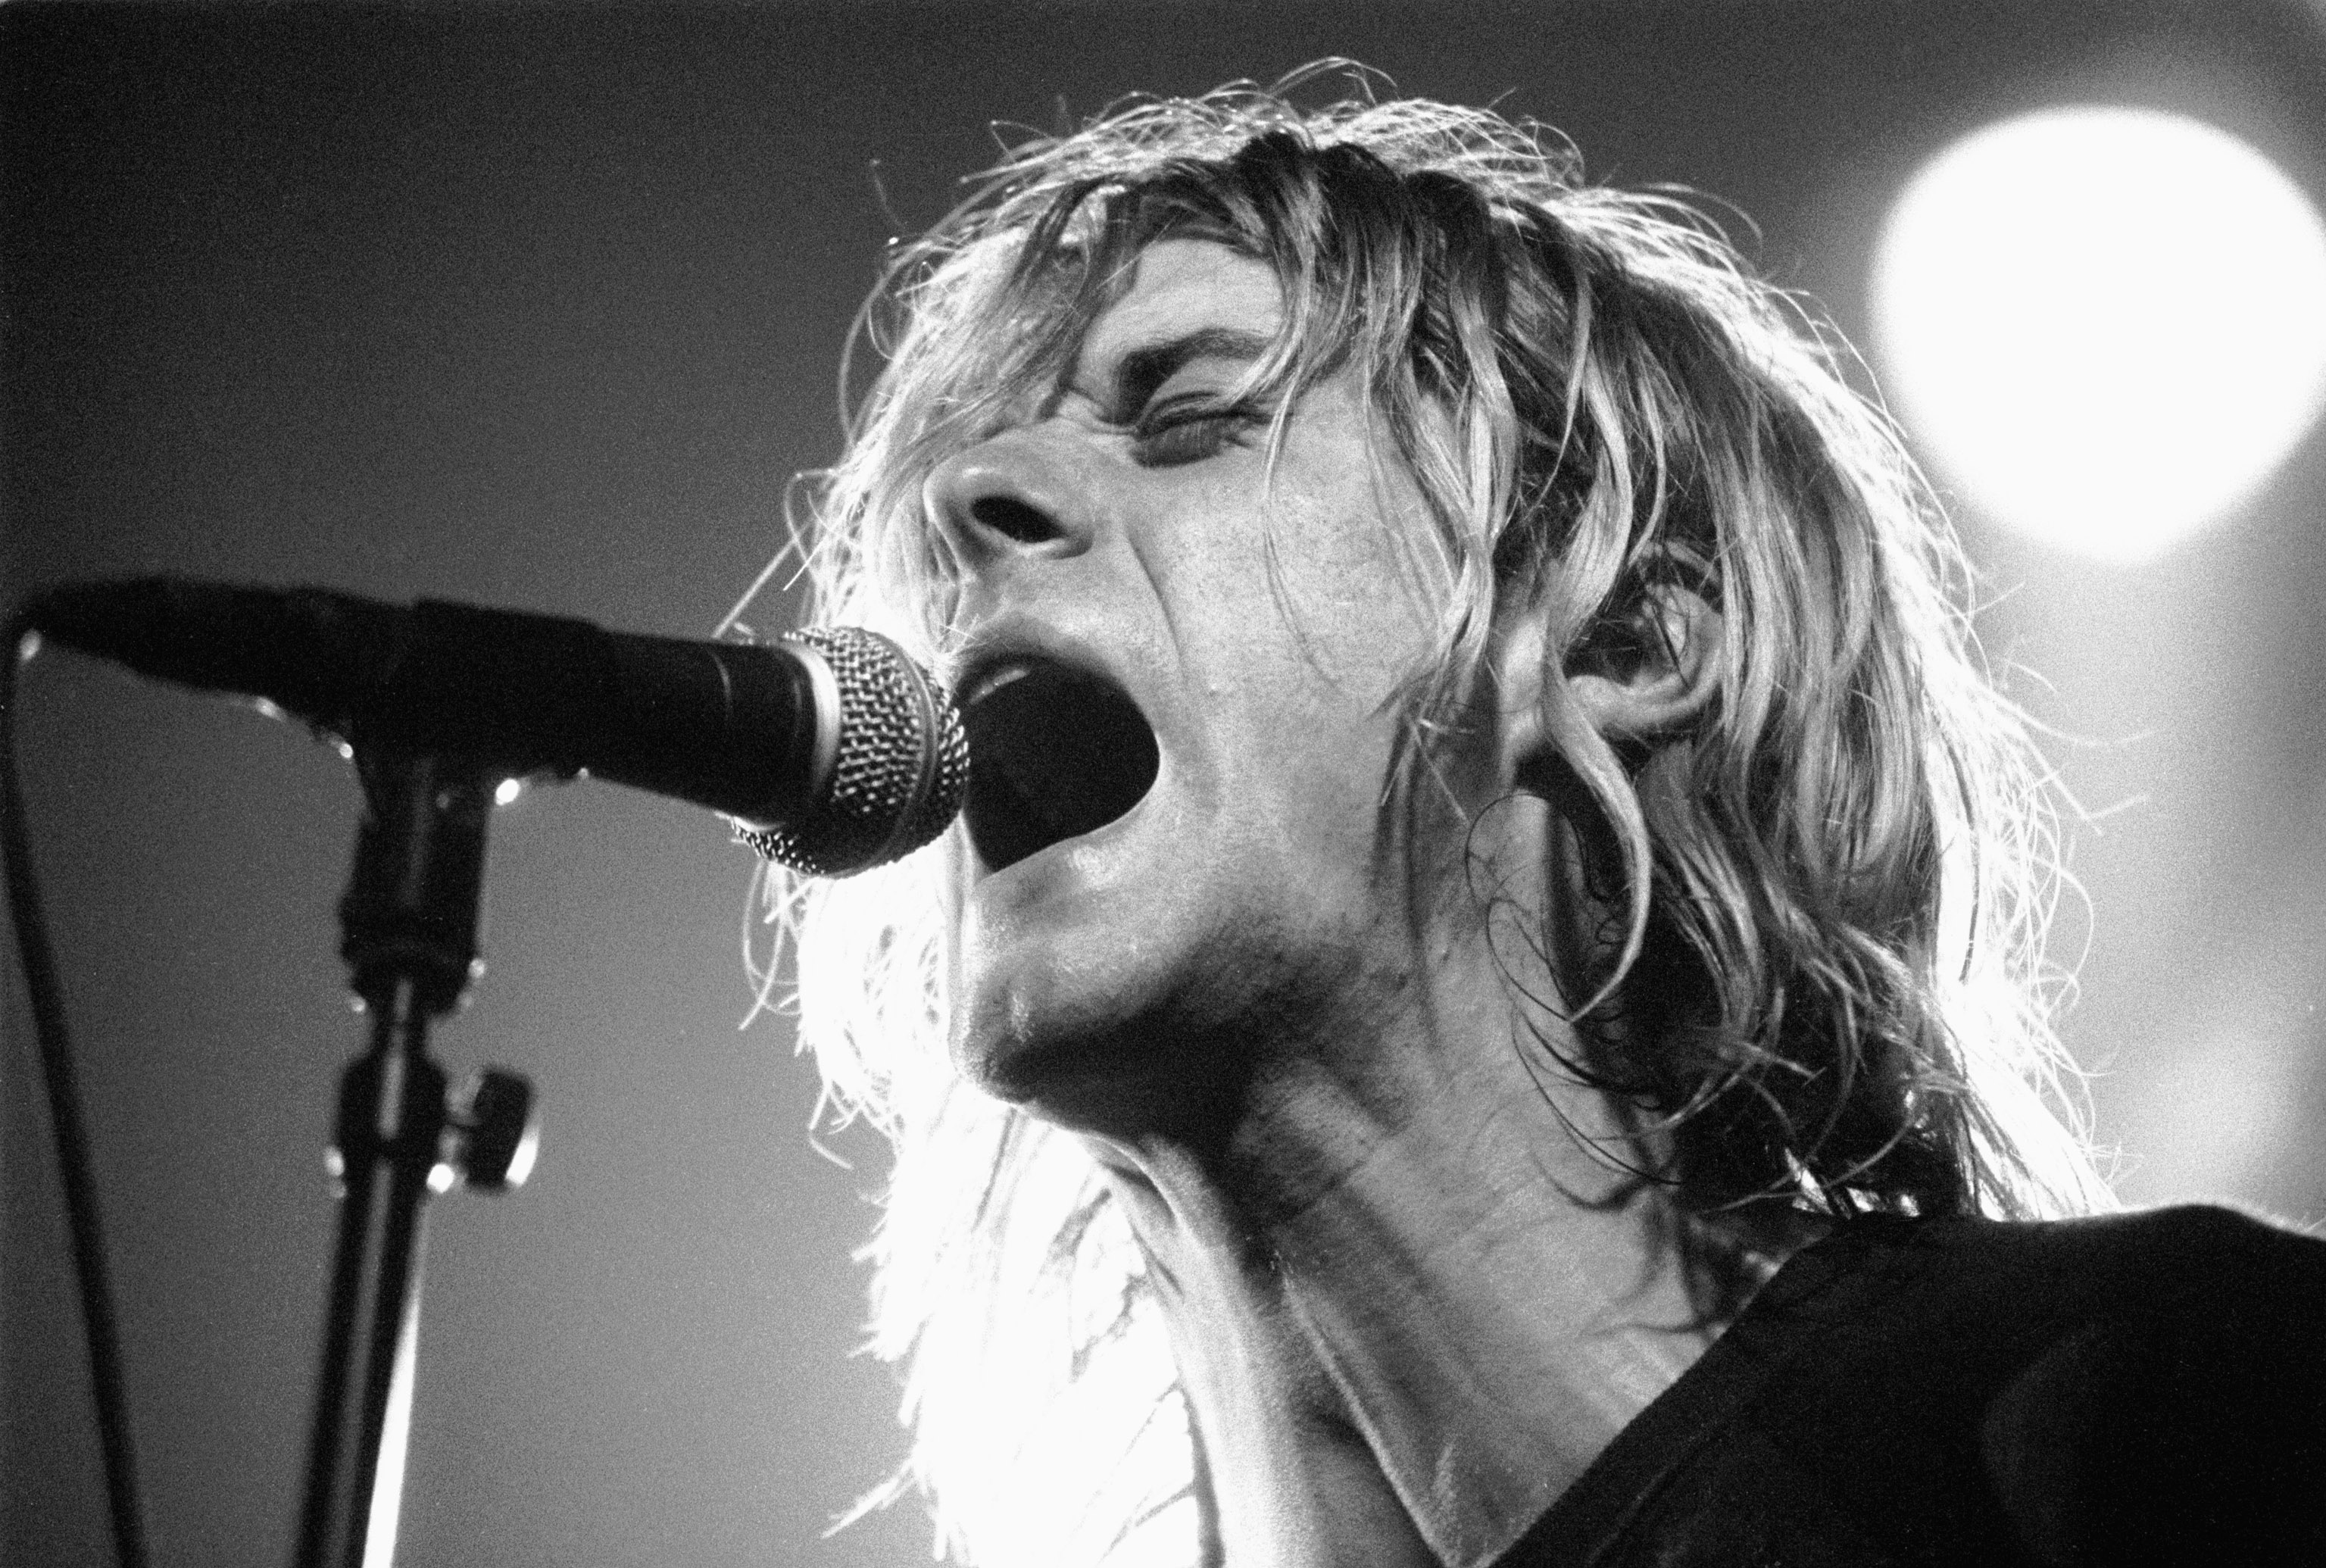 AMSTERDAM, NETHERLANDS - NOVEMBER 25: Kurt Cobain from Nirvana performs live on stage at Paradiso in Amsterdam, Netherlands o